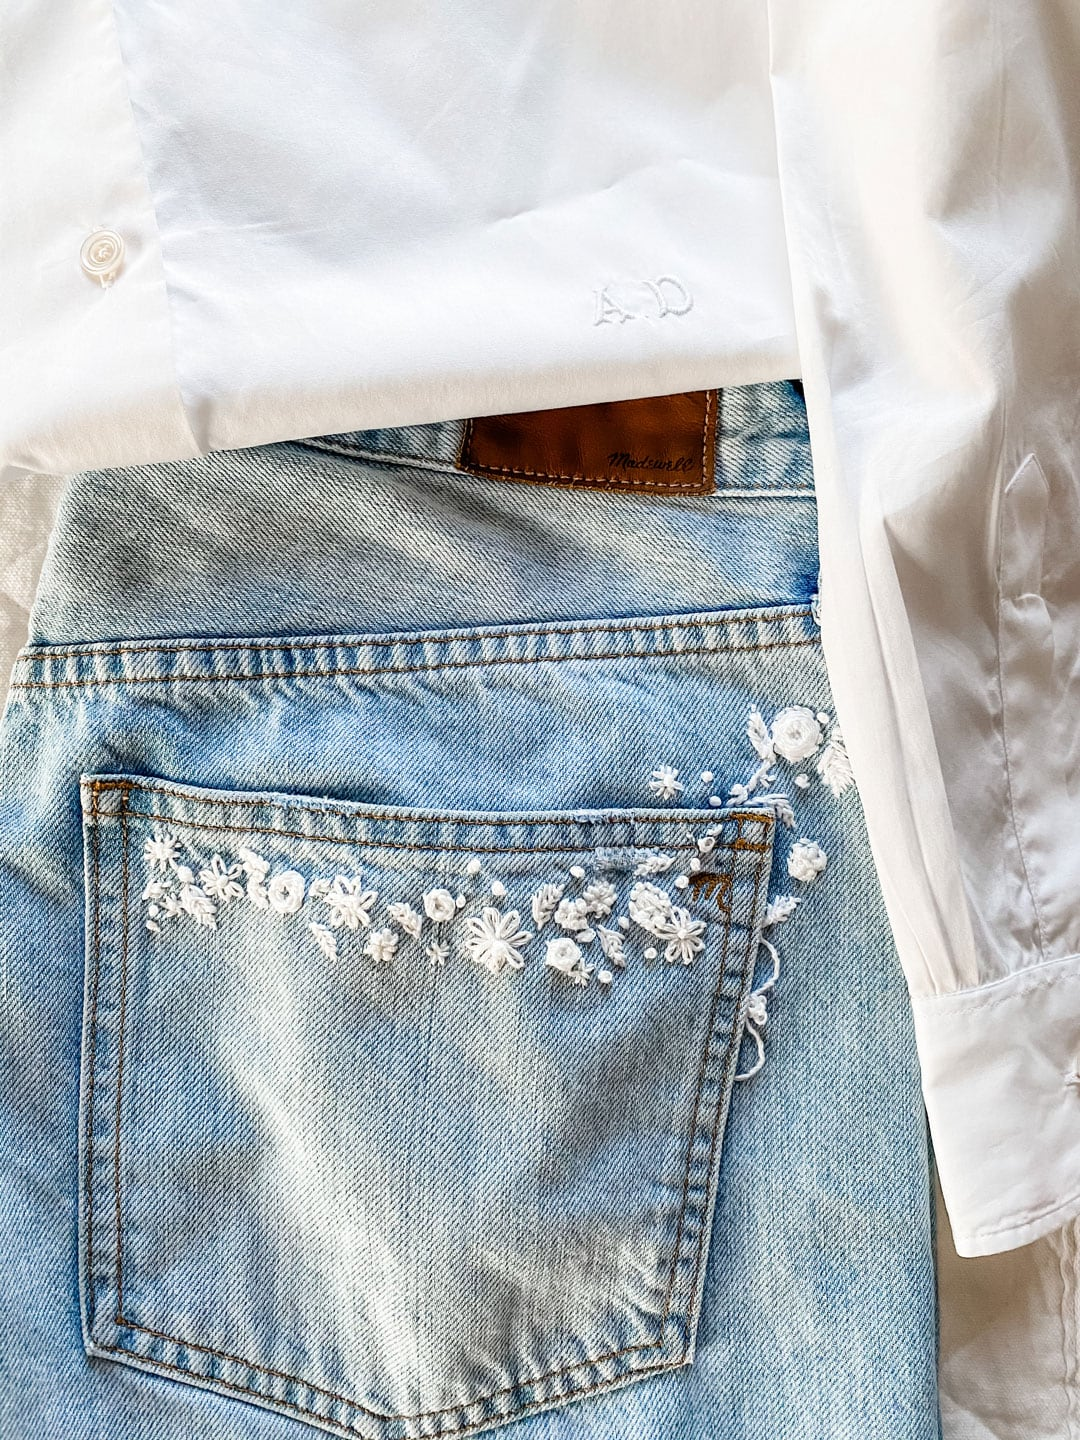 Lifestyle blogger Annie Diamond shares her new favorite embroidered jeans